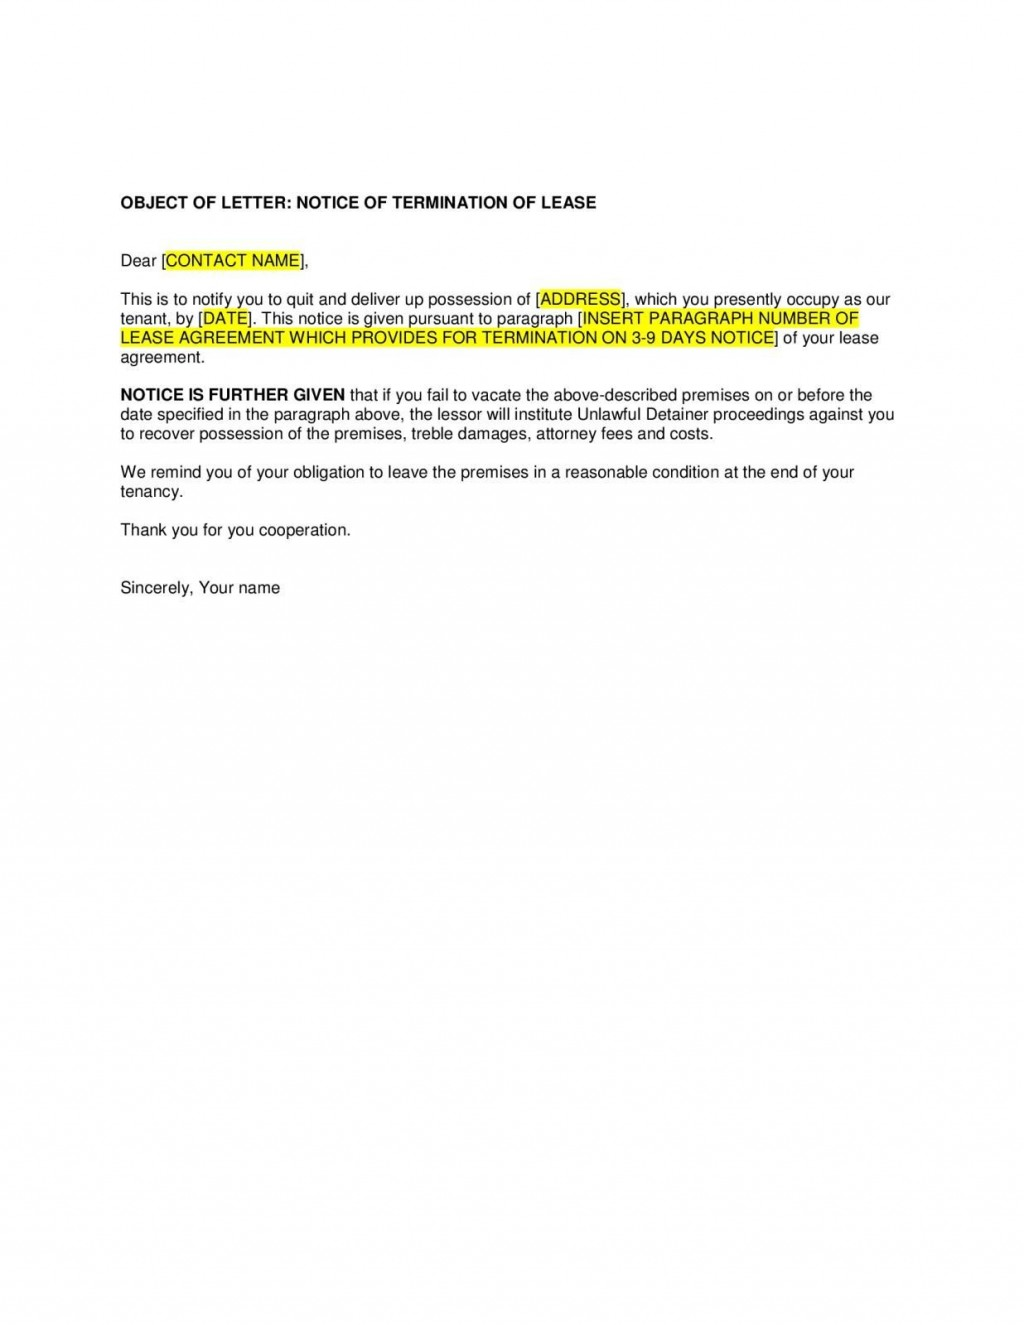 005 Magnificent Sample Letter For Terminating Rental Agreement High Def  Terminate Tenancy To Lease From Landlord ALarge